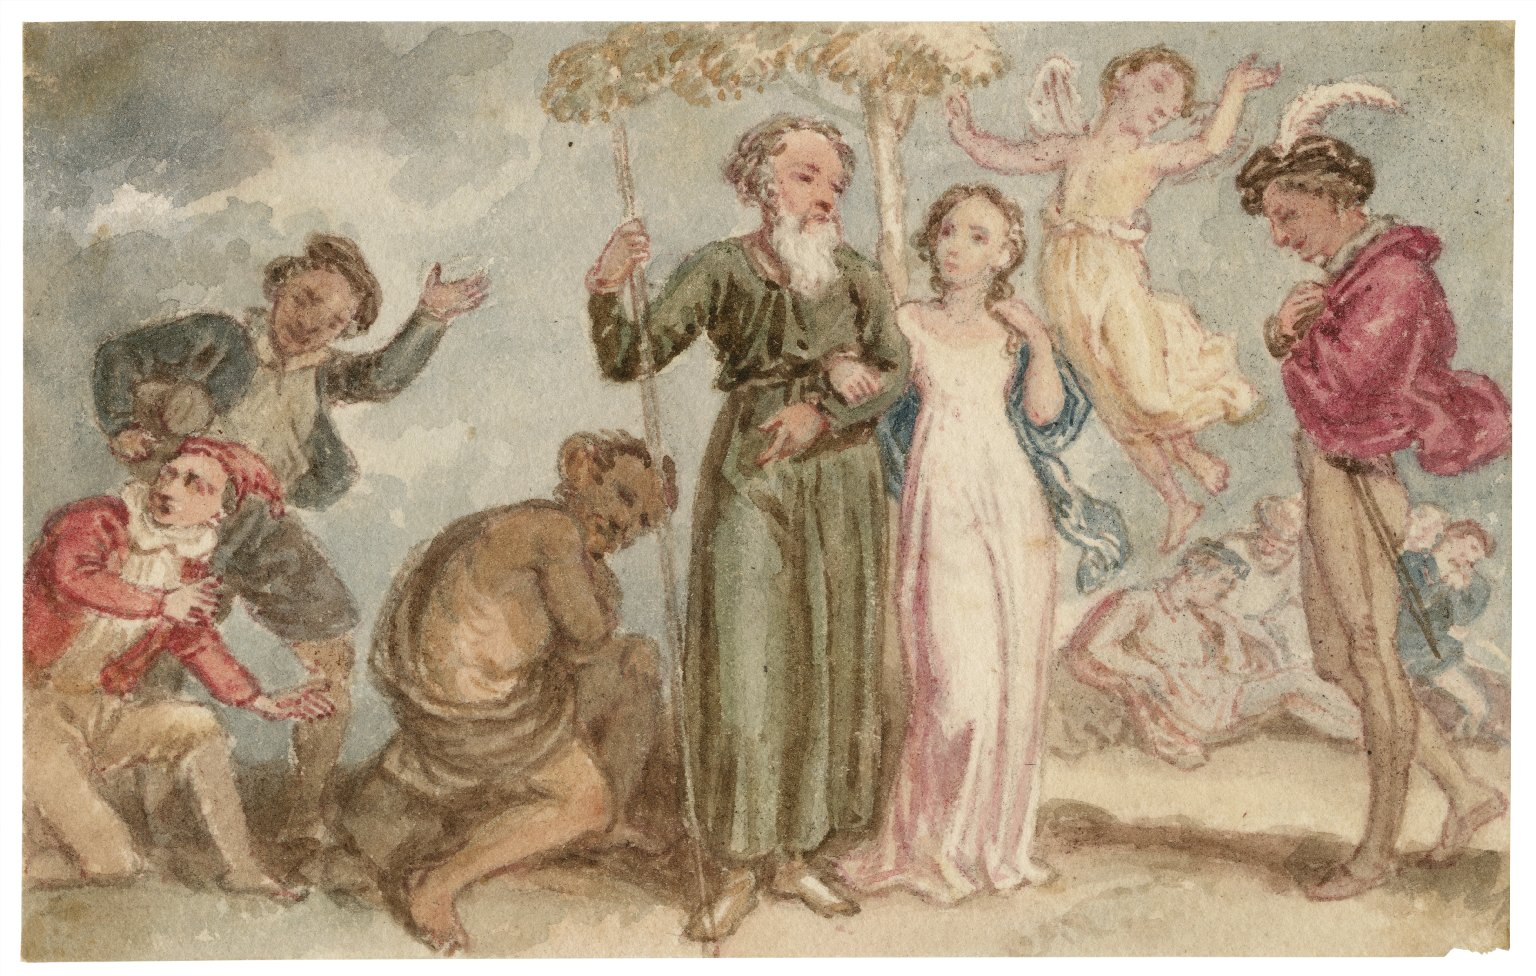 [Scenes from The tempest and Midsummer night's dream] [graphic] / [John Massey Wright].